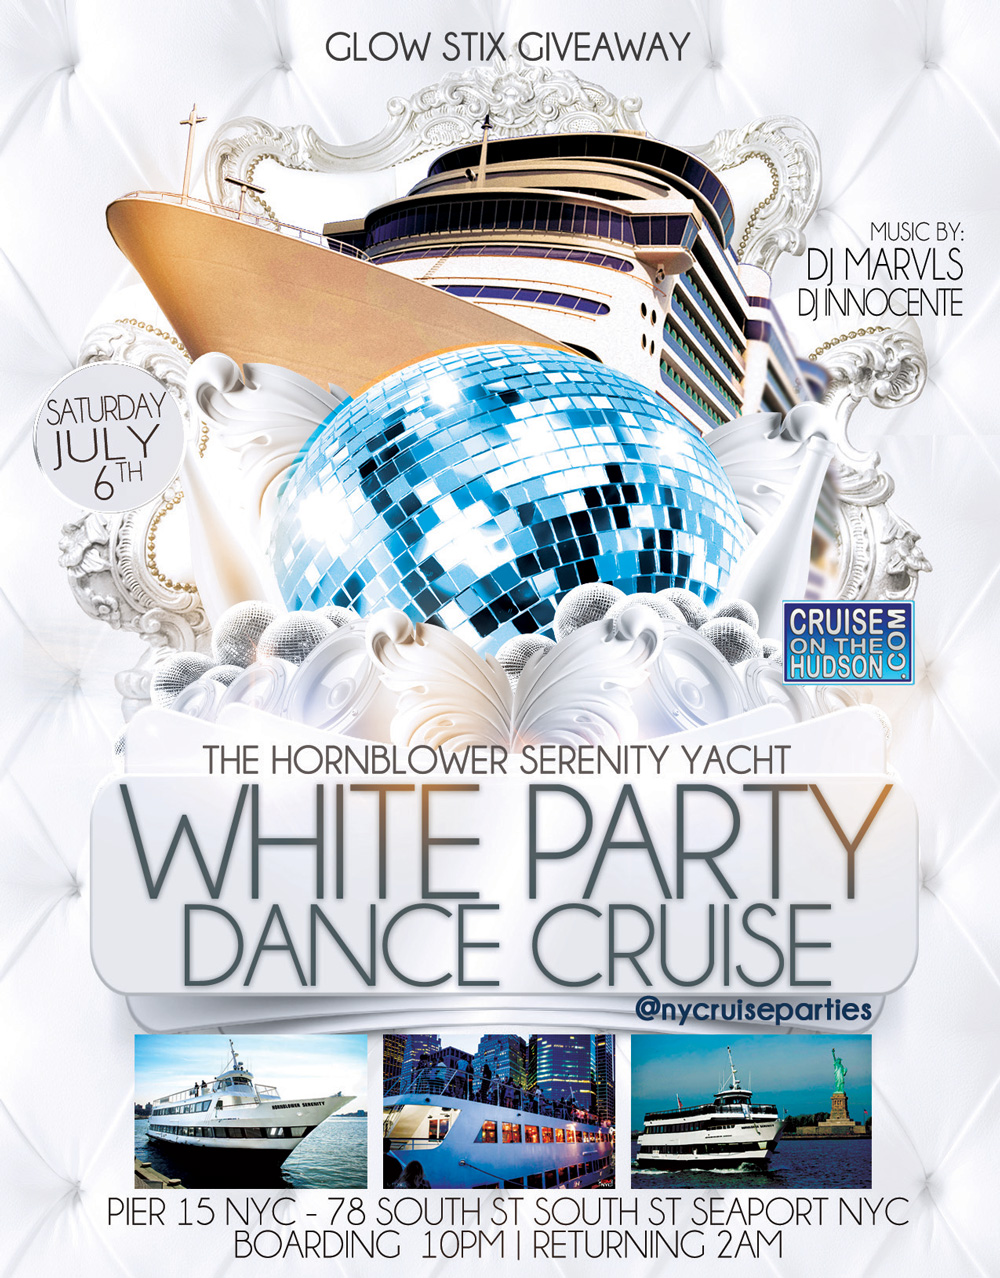 All White Party NYC Cruise Party Pier 15 NYC South Street Seaport